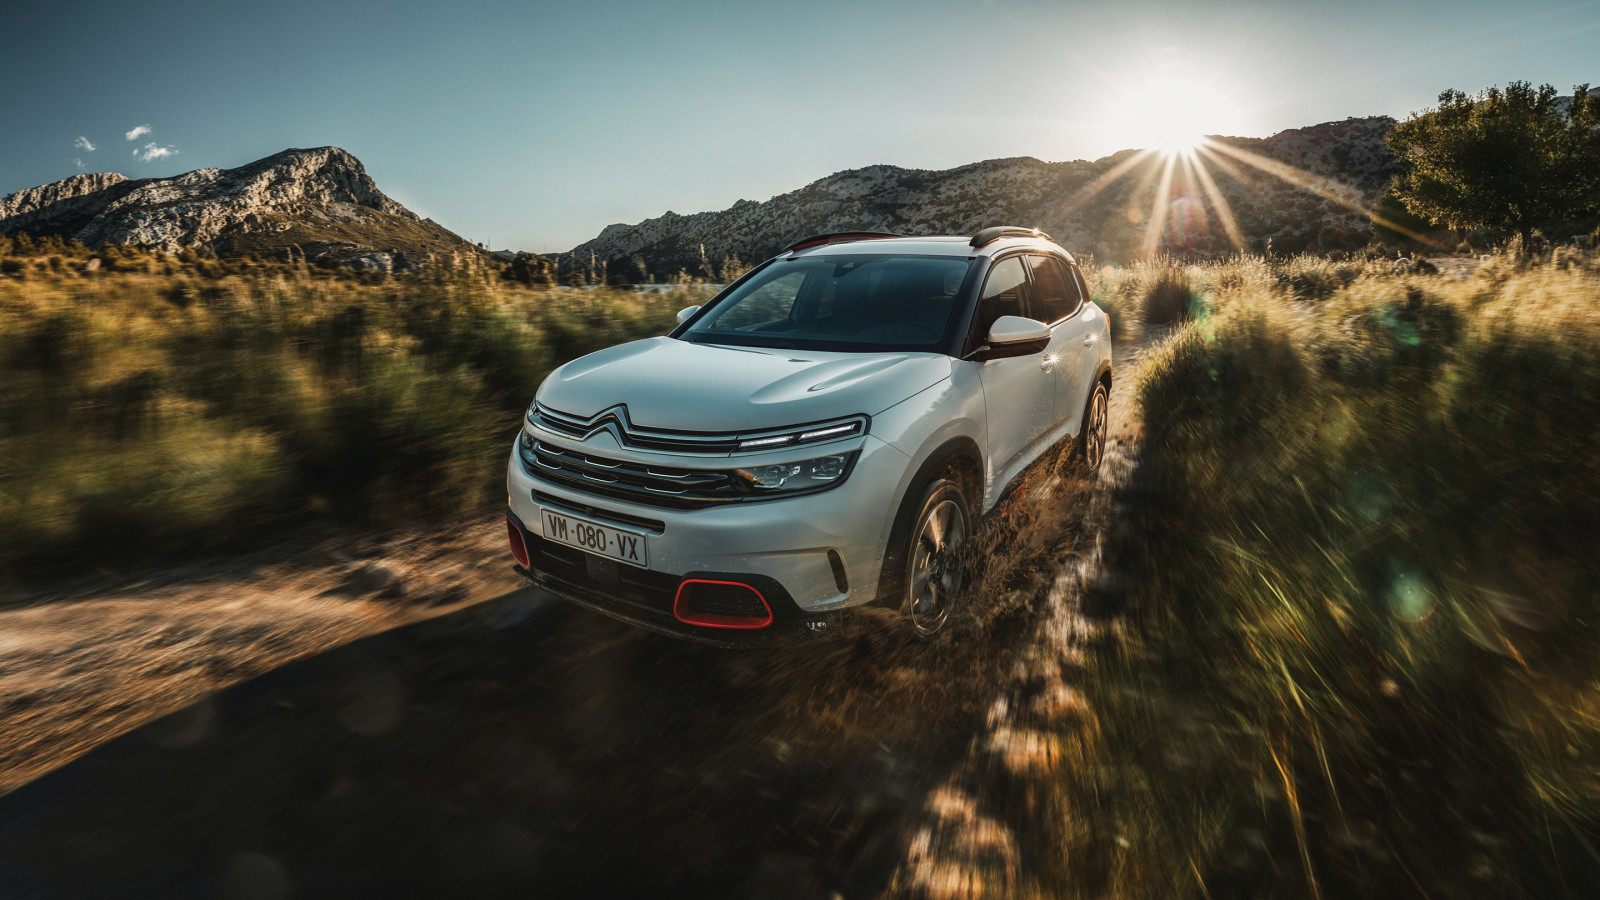 Citroen C5 Aircross wallpaper 1600x900